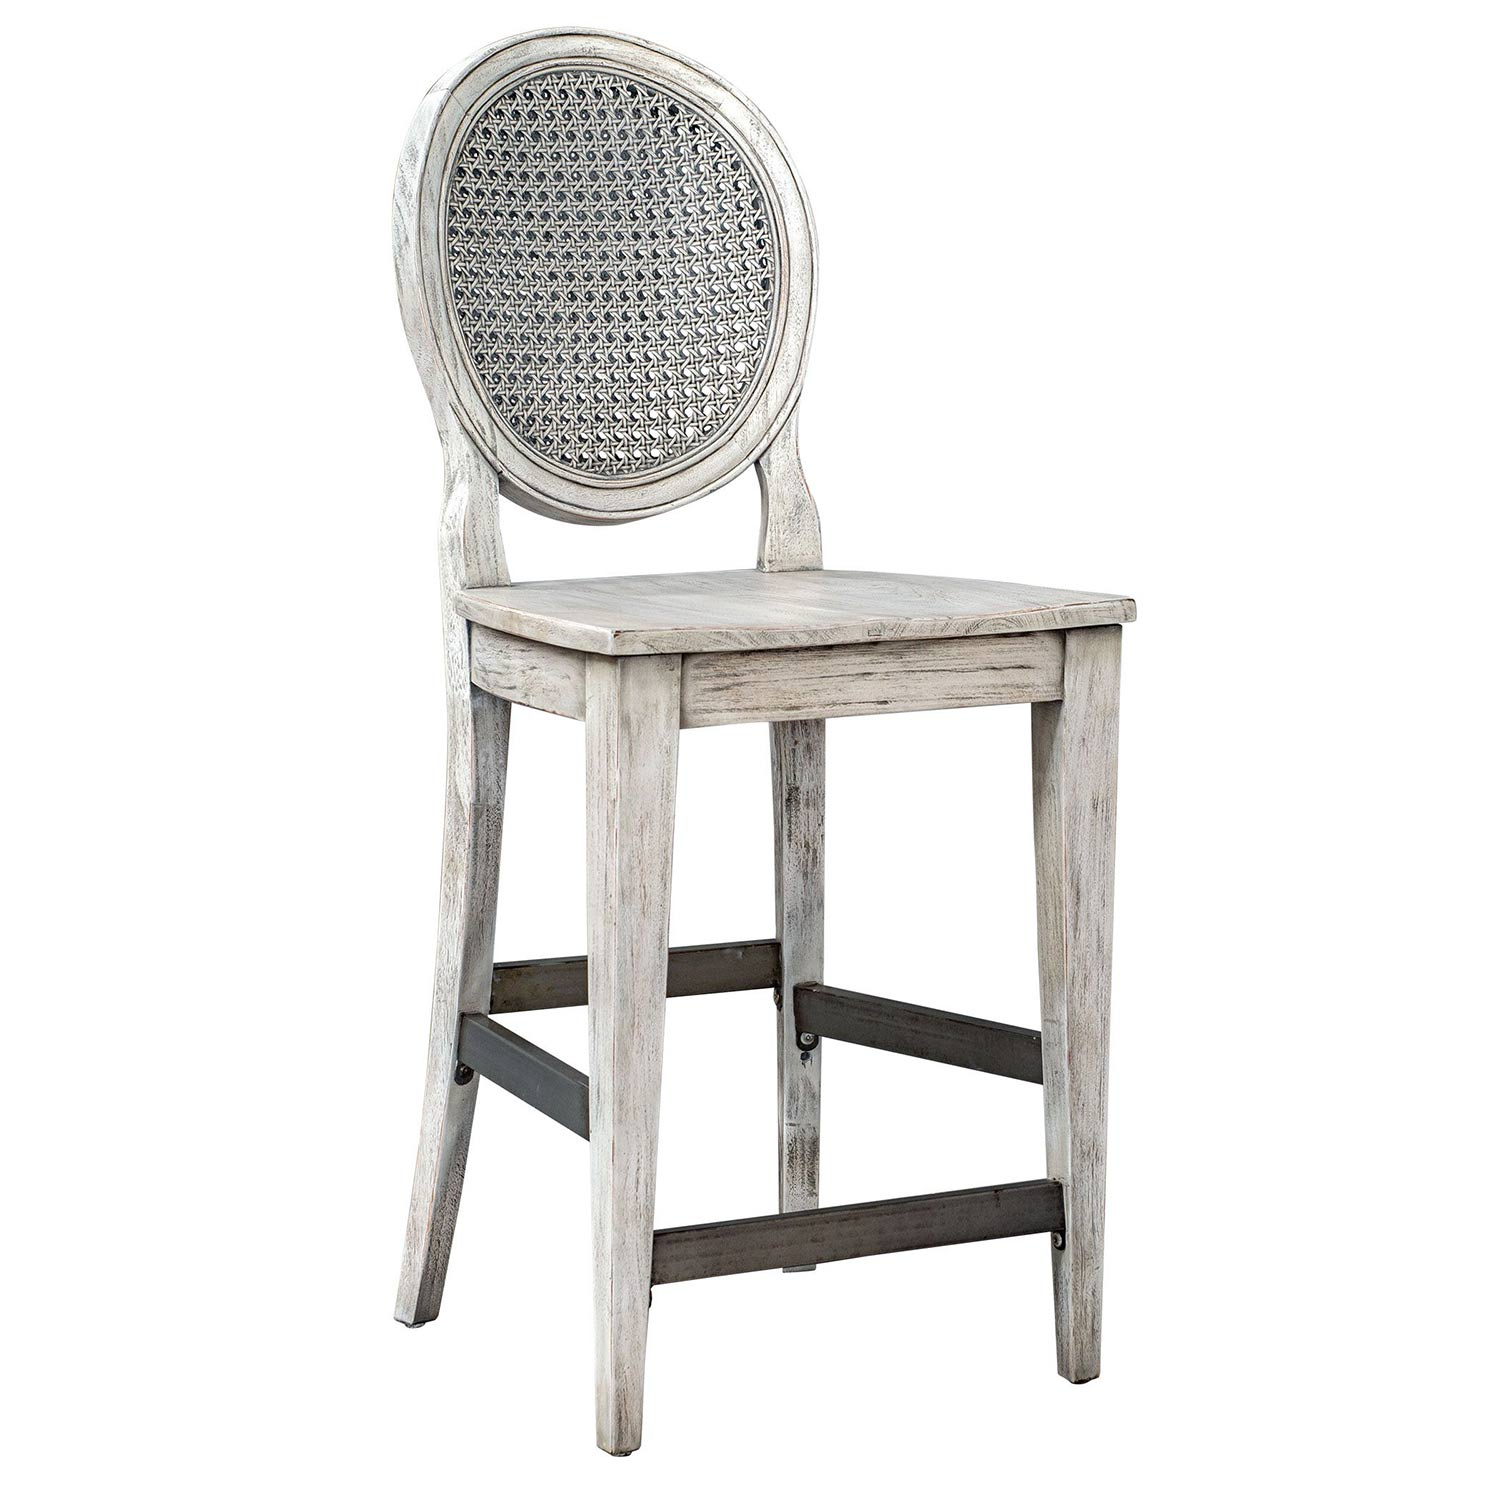 Uttermost Clarion Counter Stool - Aged White